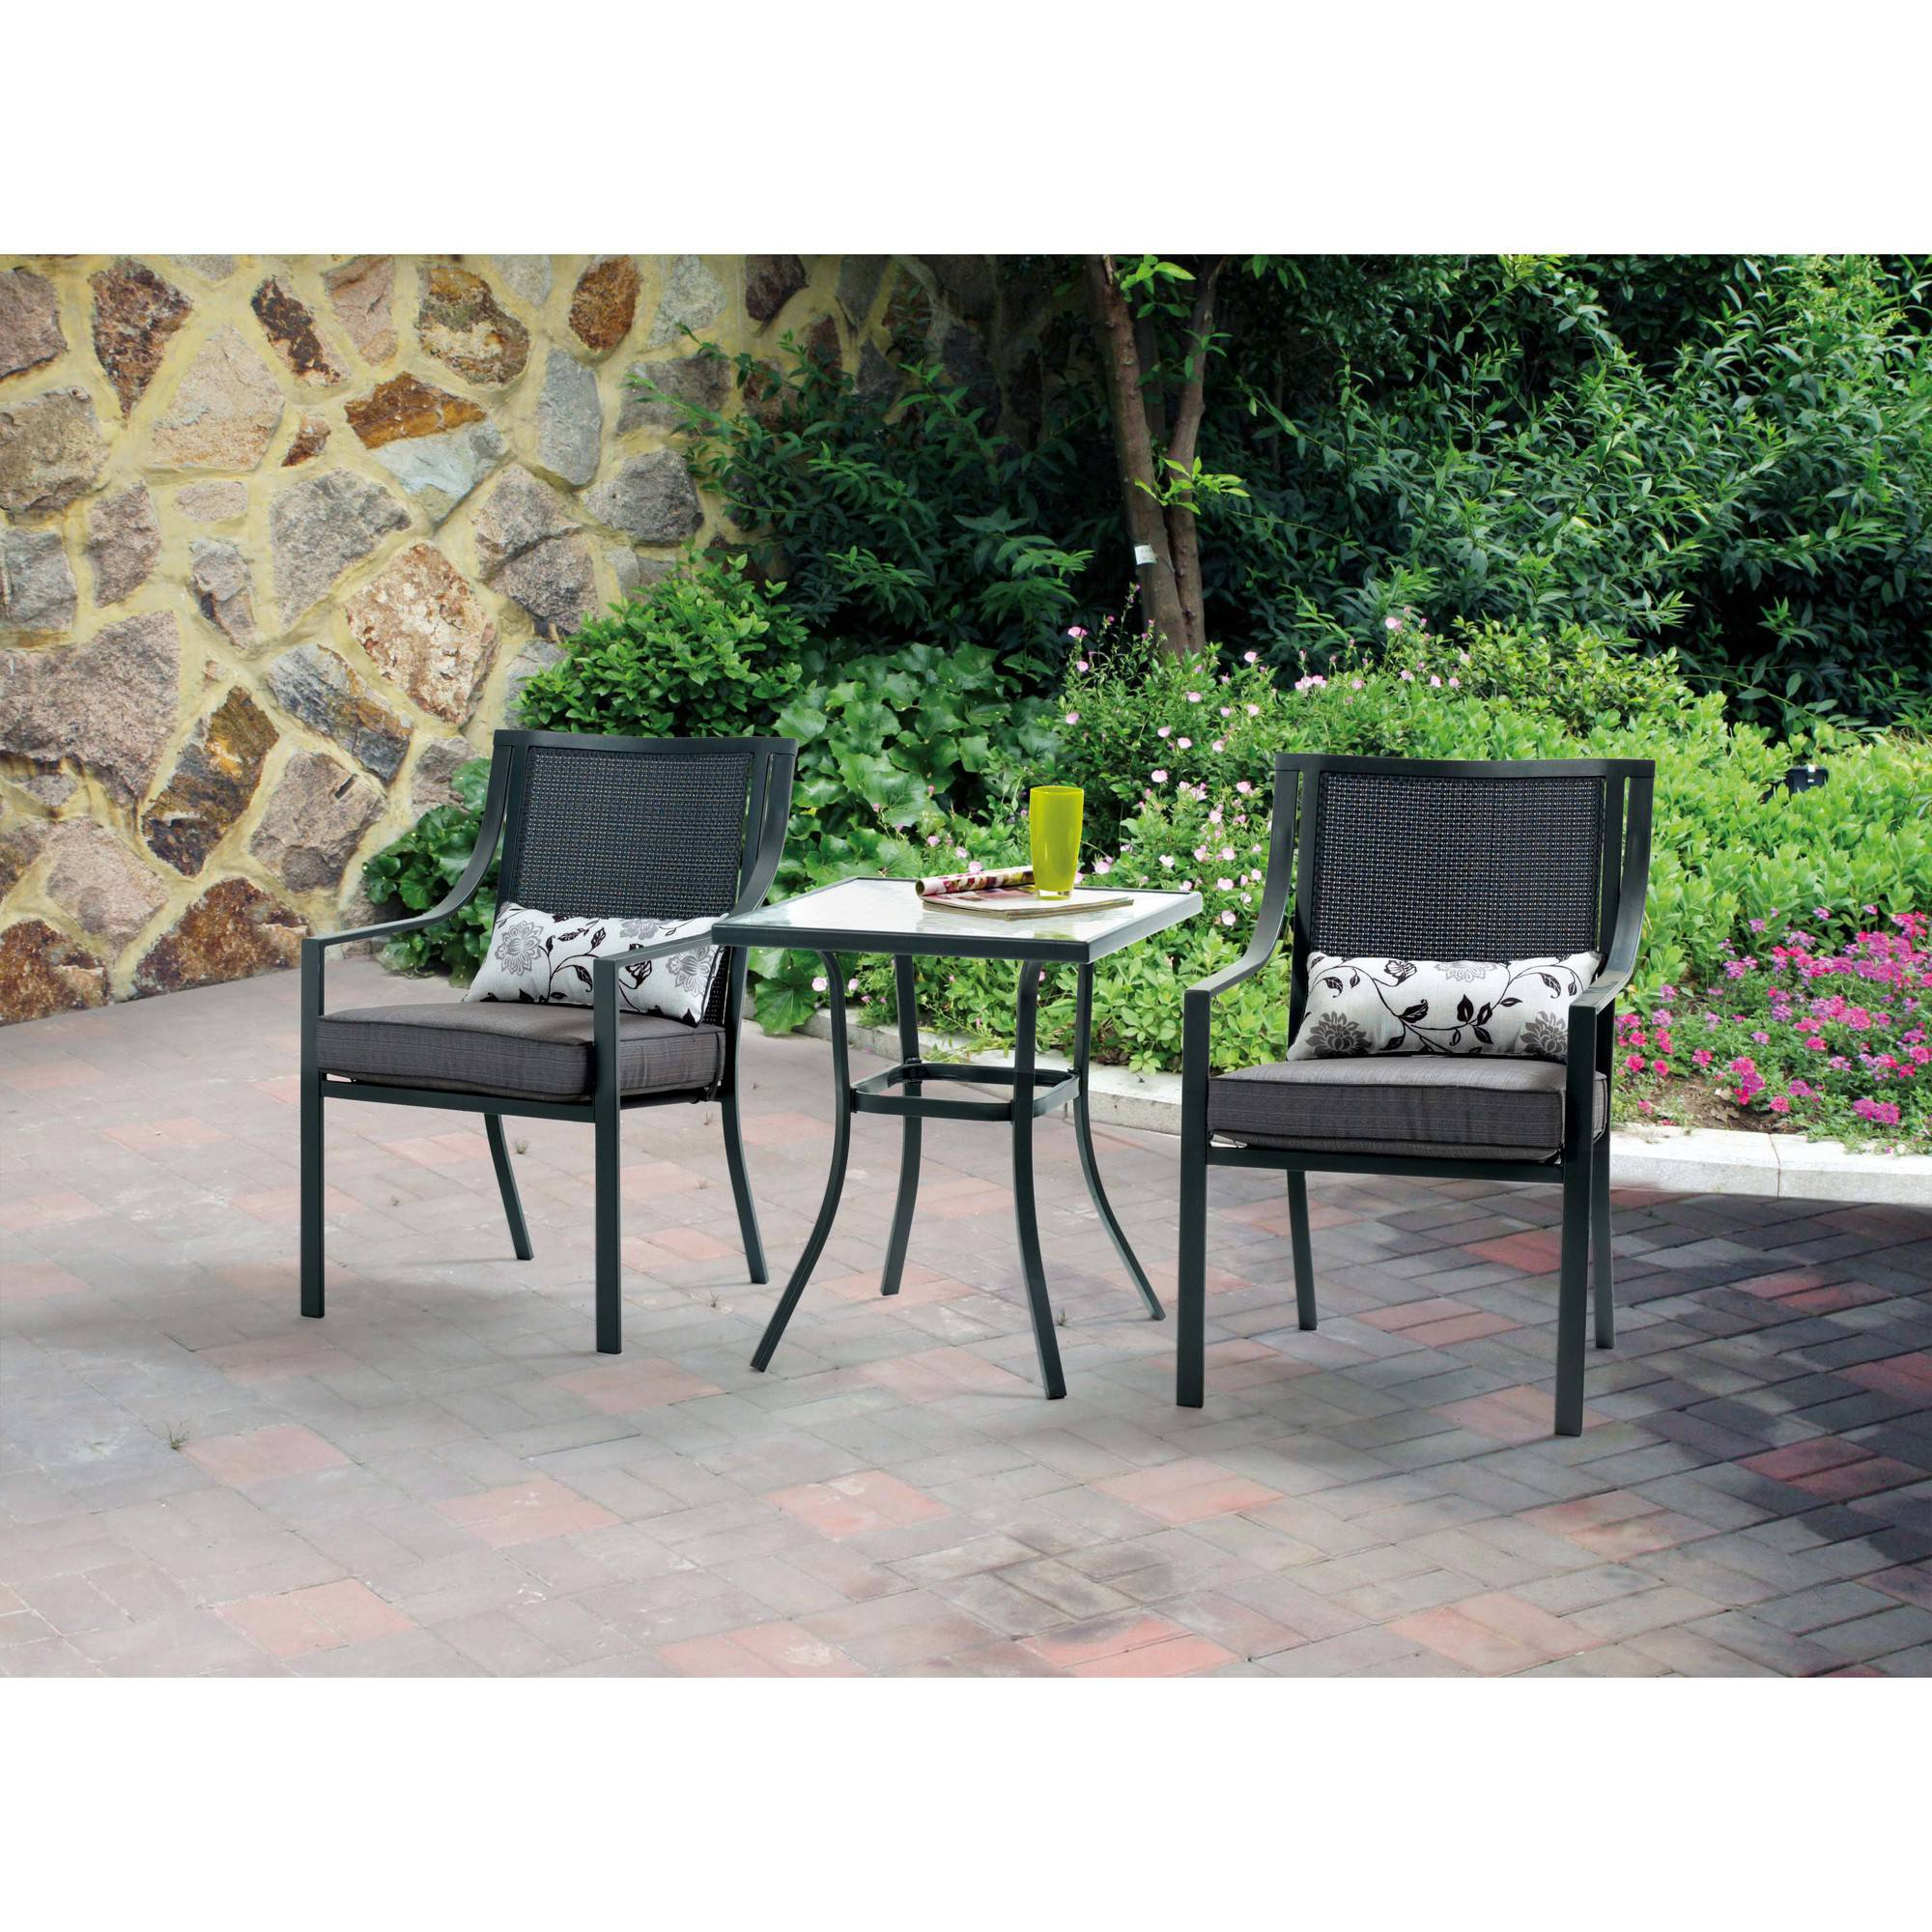 Mainstays Alexandra Square 3 Piece Outdoor Bistro Set Walmart Com